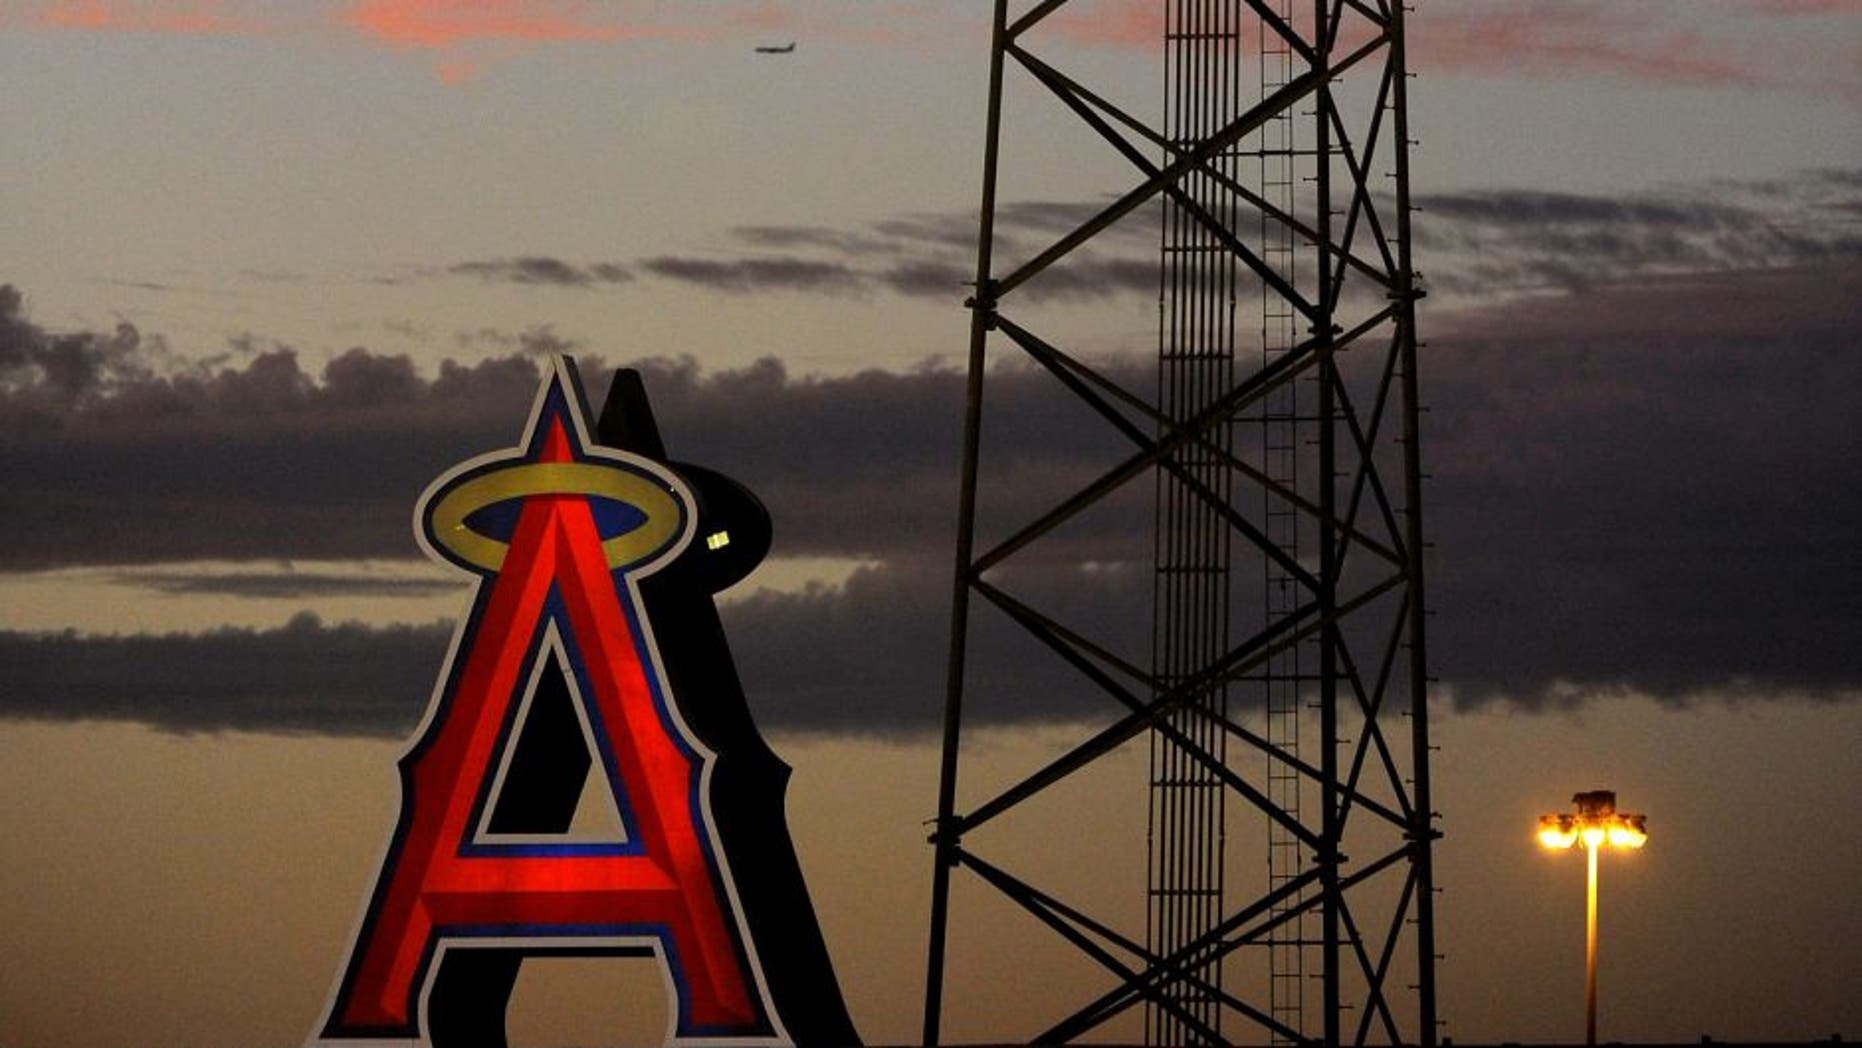 ANAHEIM, CA - AUGUST 25: A general view of the stadium lights at sunset during the game between the Miami Marlins and Los Angeles Angels of Anaheim on August 25, 2014 at Angel Stadium of Anaheim in Anaheim, California. (Photo by Jordan Murph/Angels Baseball LP/Getty Images)